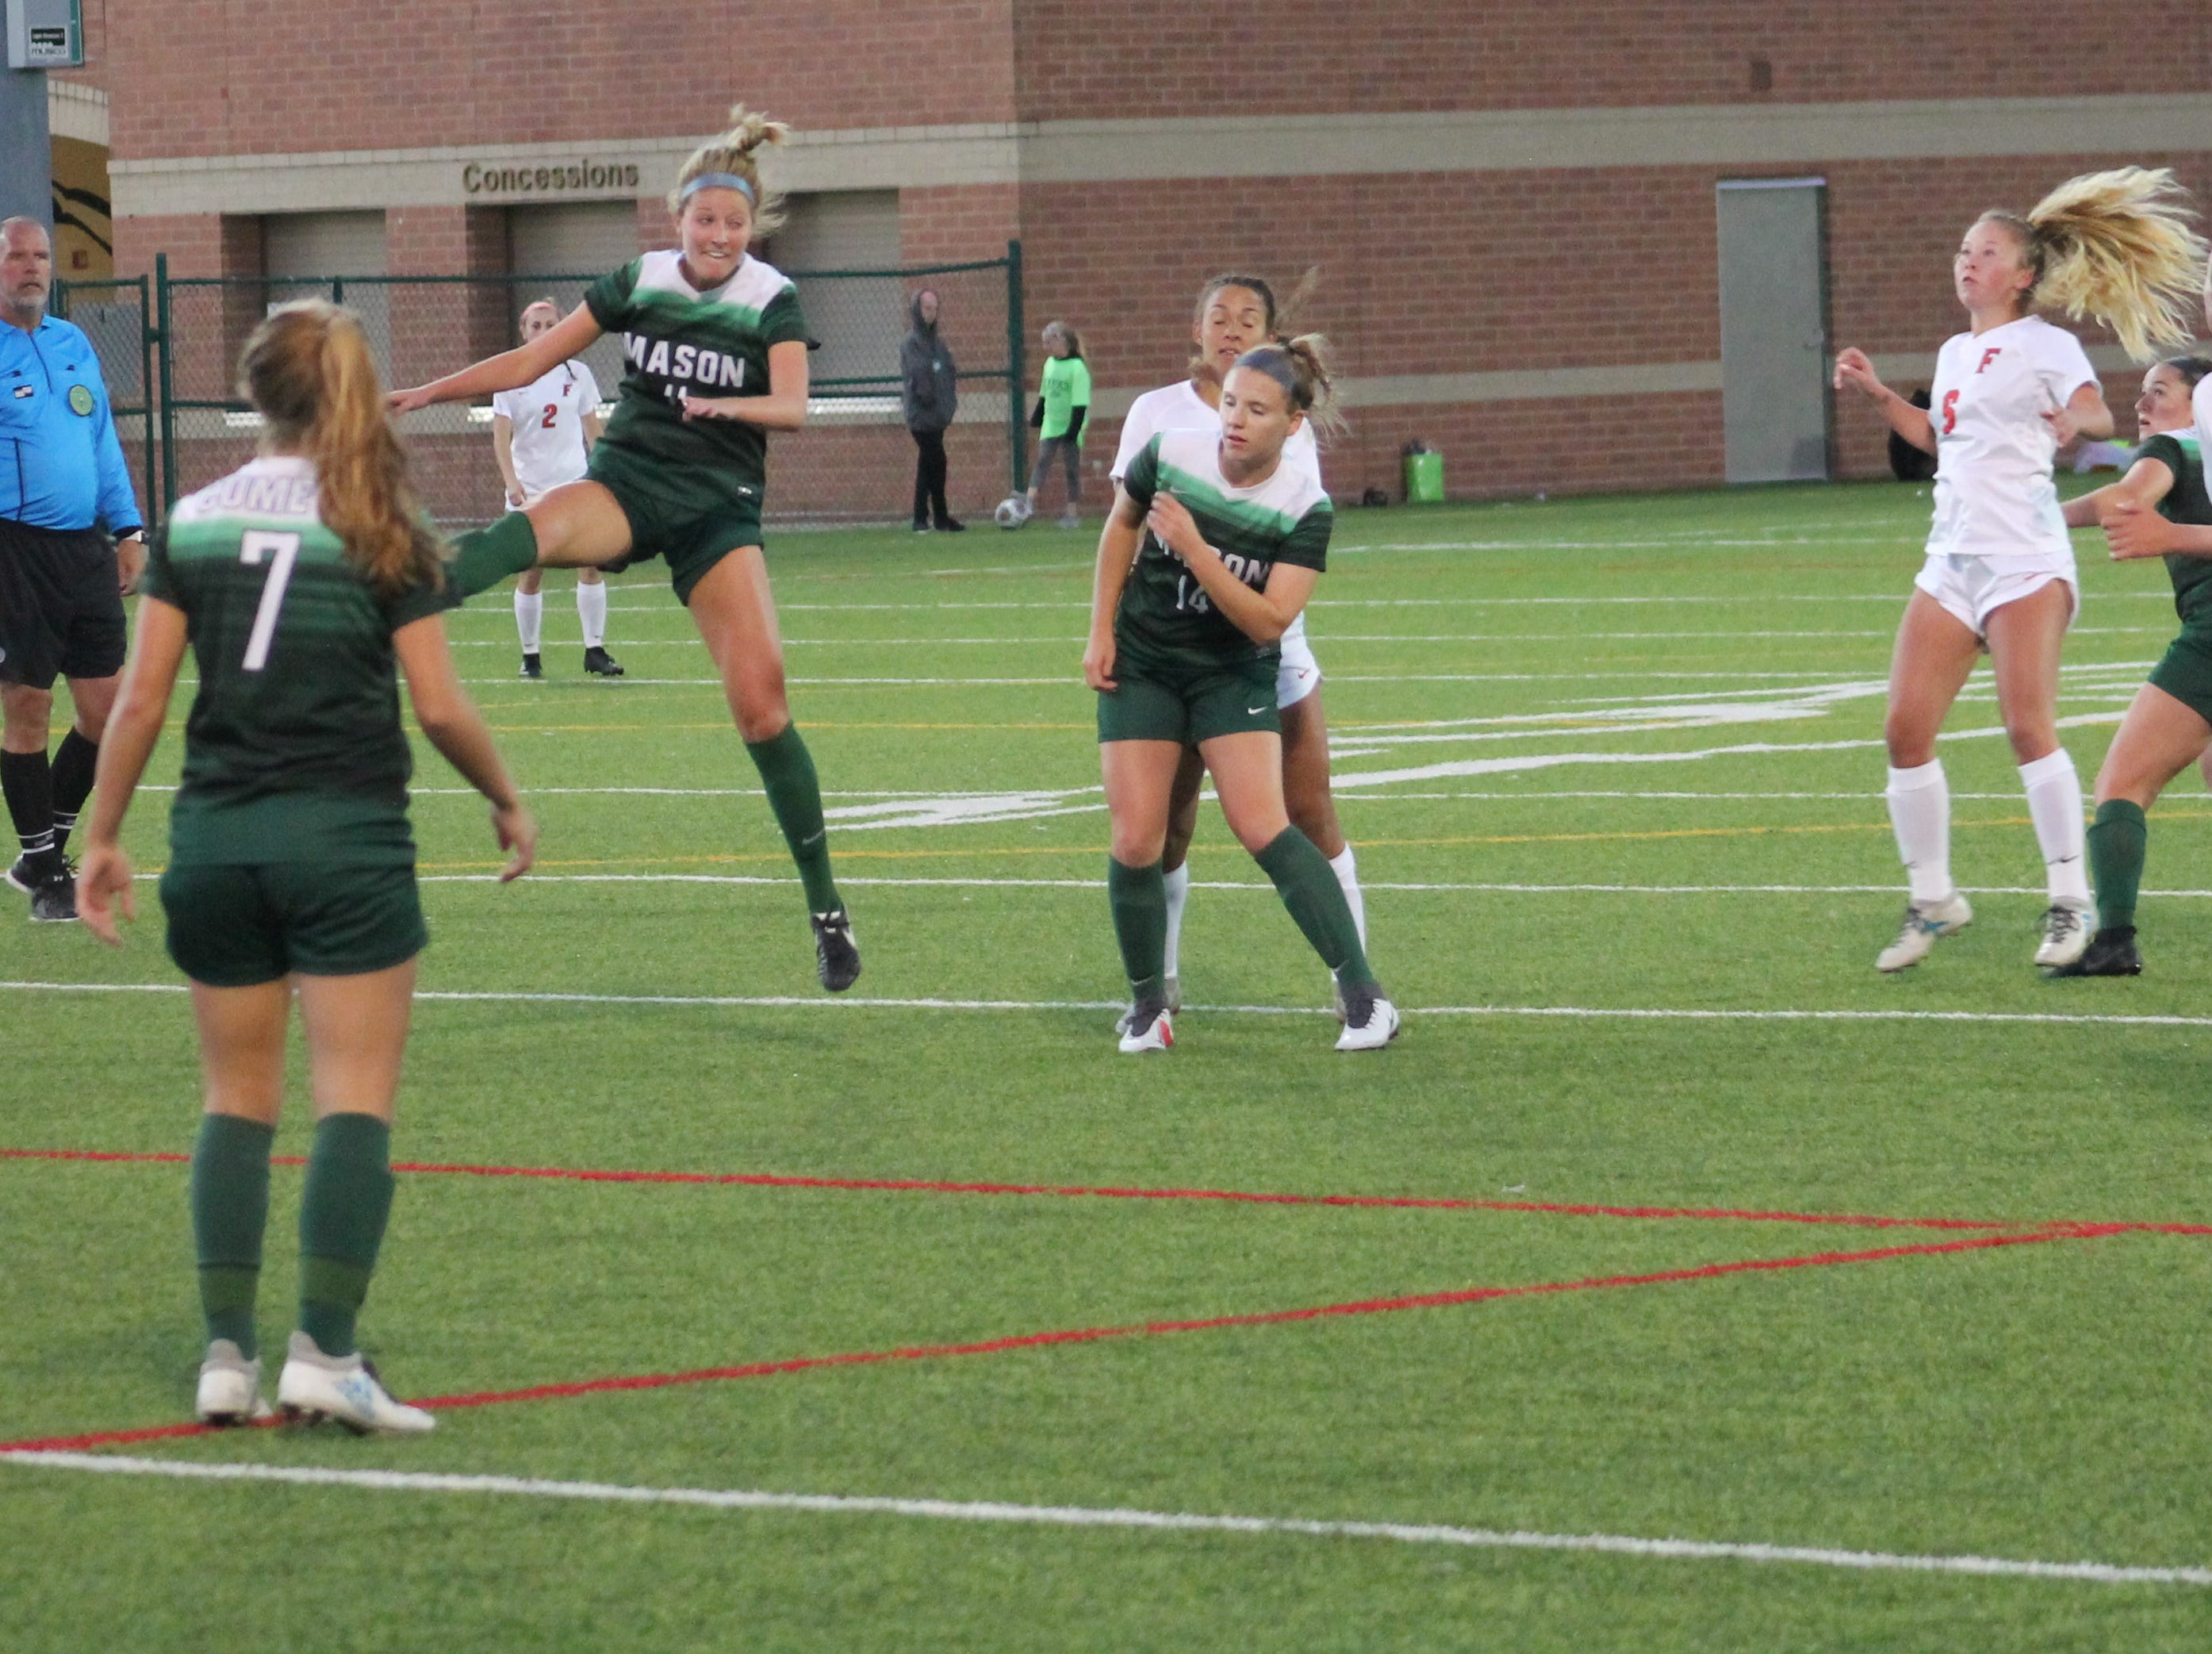 Mason senior forward Jenna Burns goes high in the air for the ball in the Lady Comets 1-0 victory over Fairfield Oct. 12